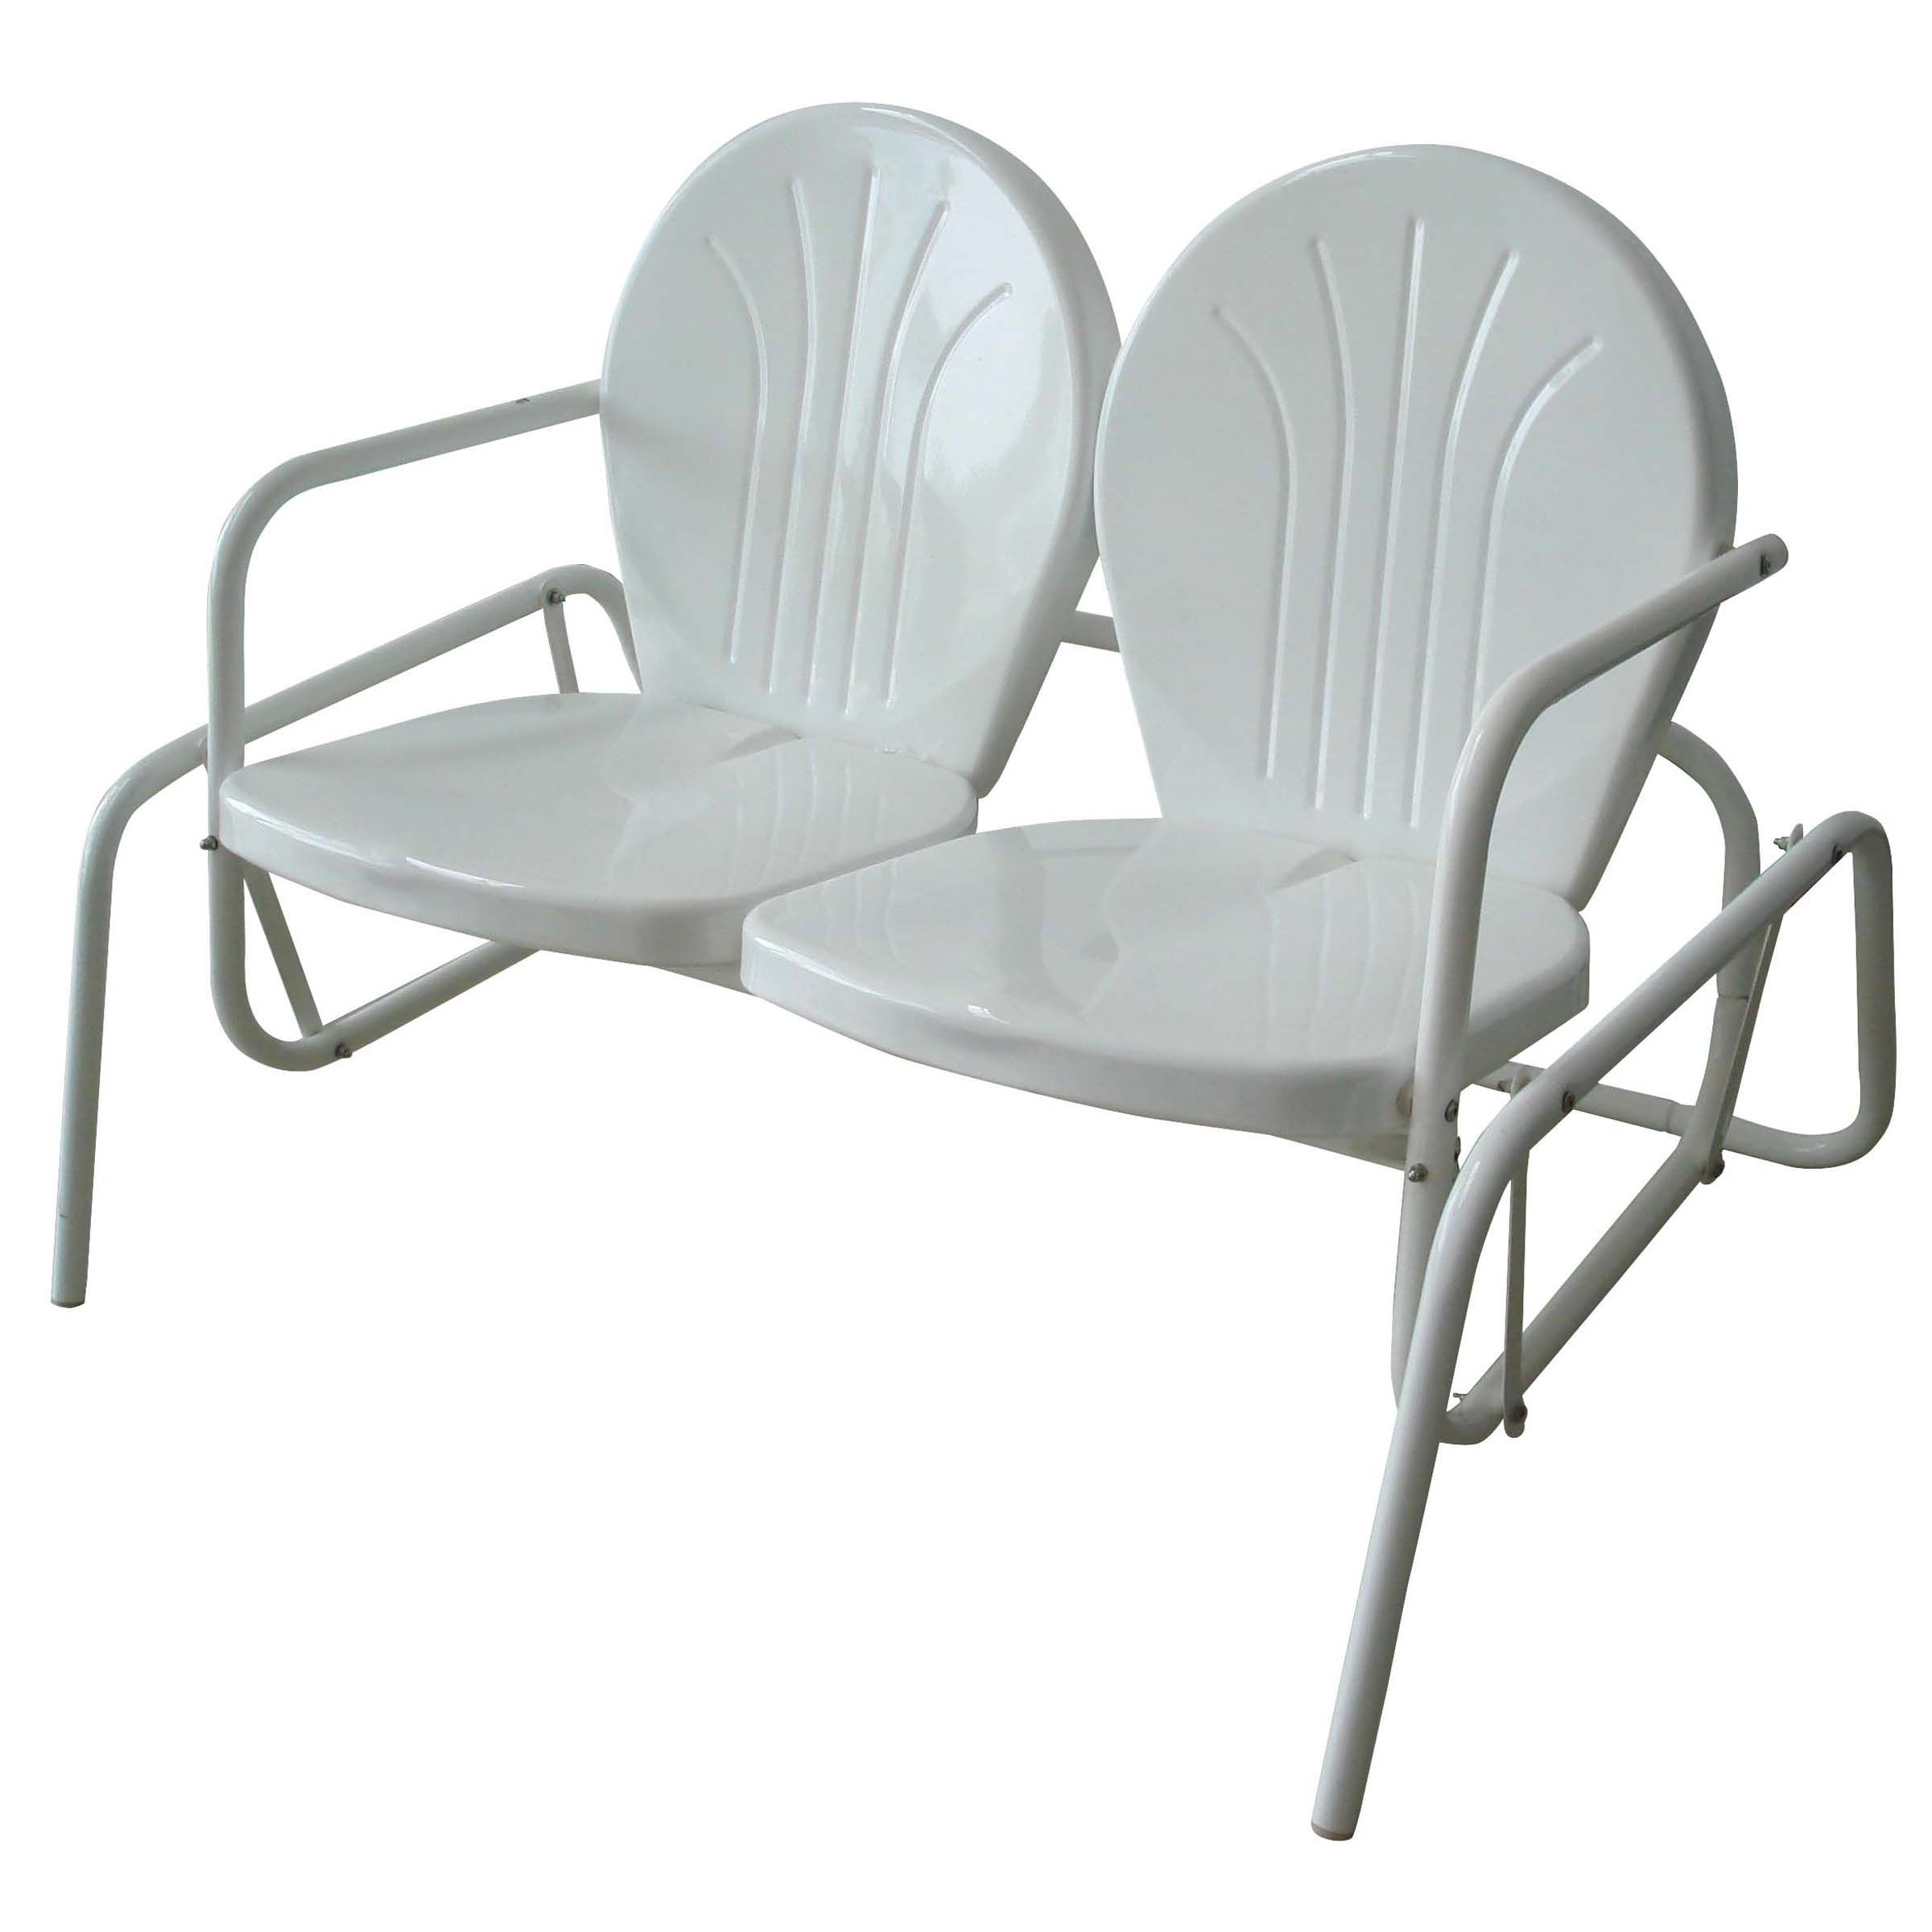 Sit back and relax on this double seat glider chair This